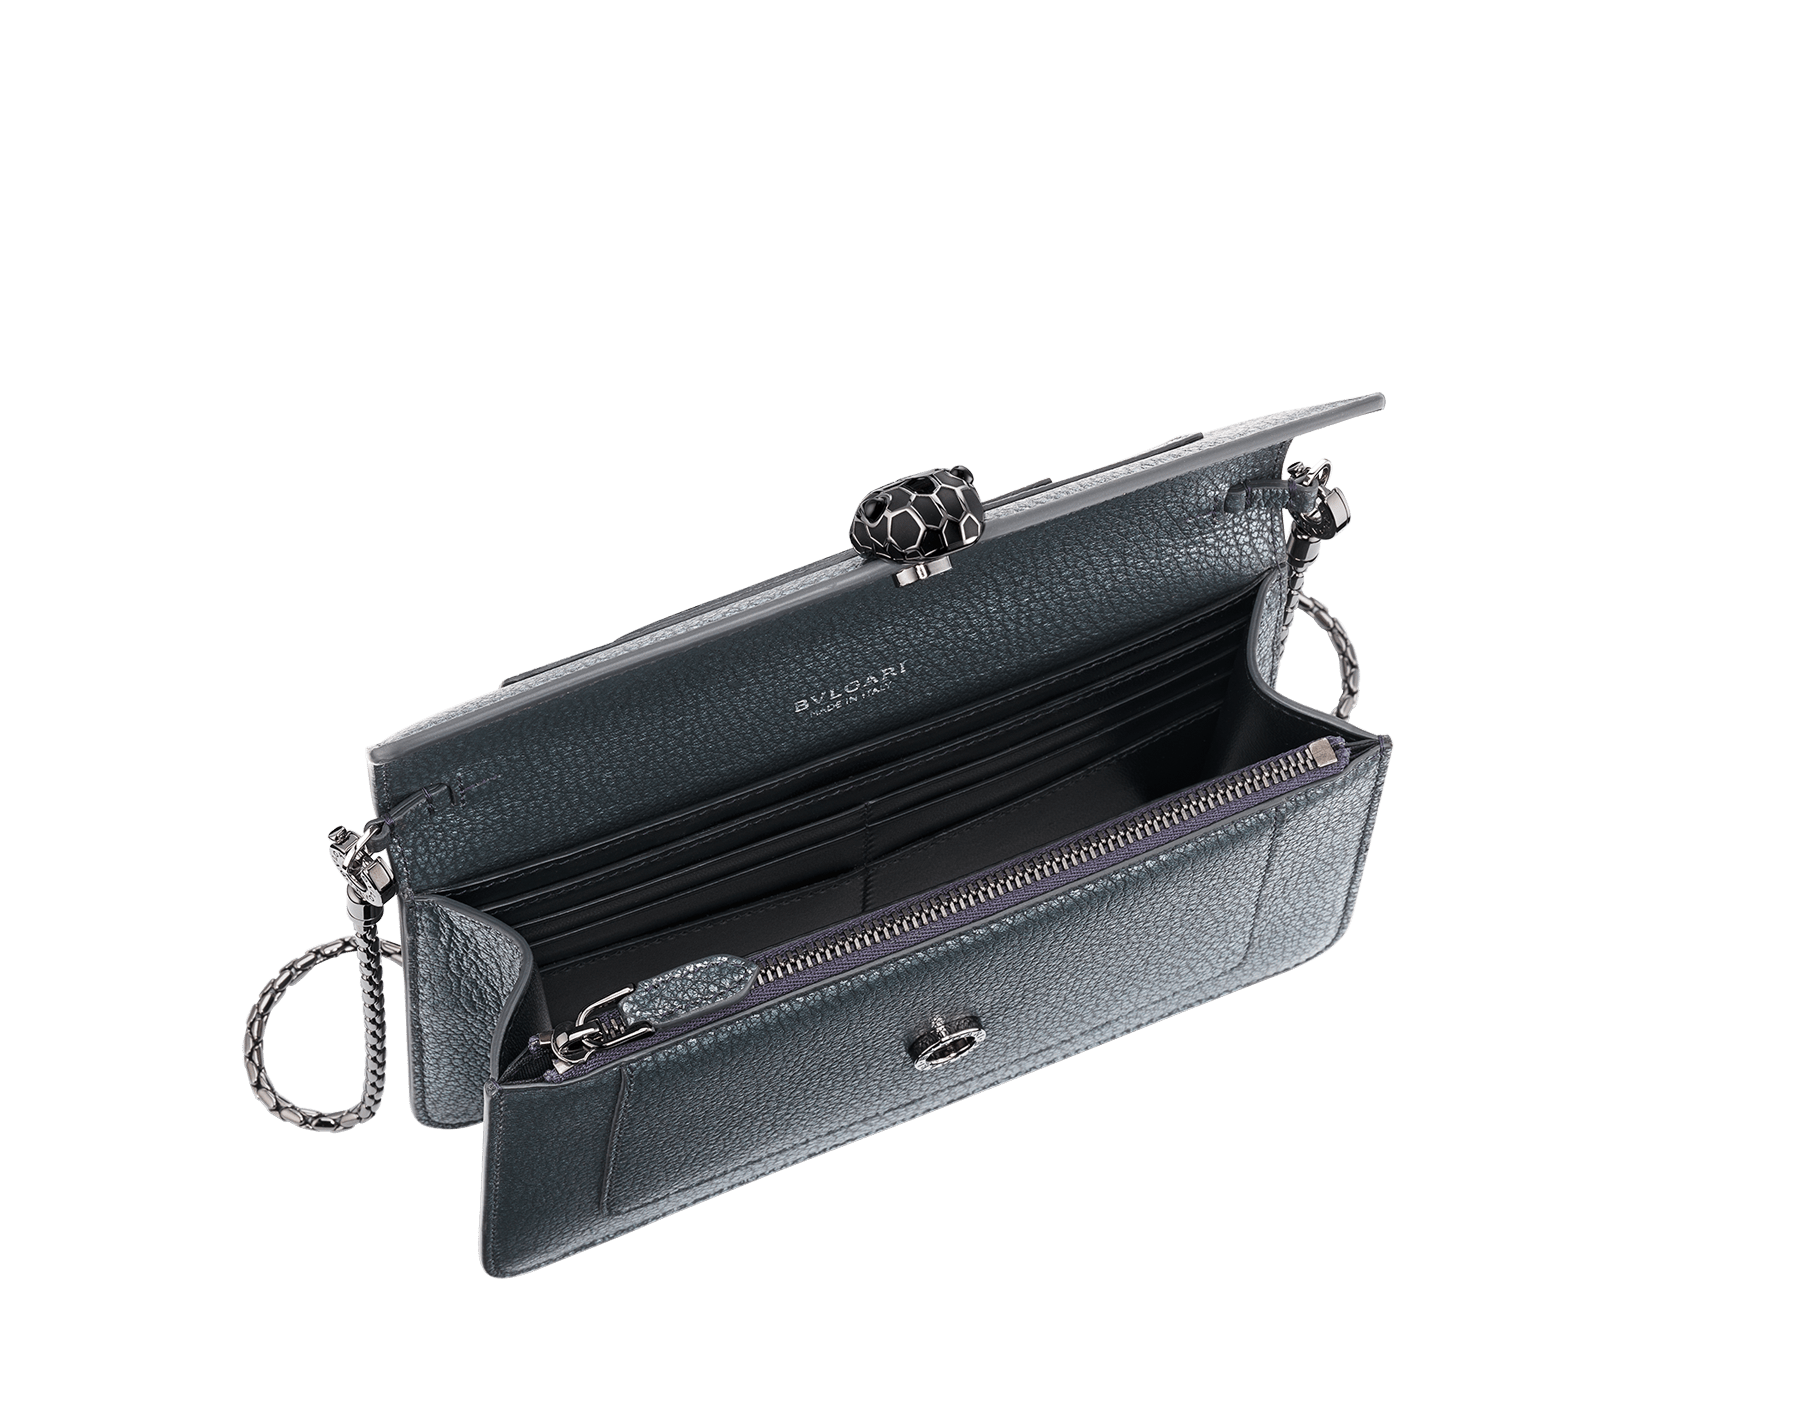 """Serpenti Forever"" new chain wallet in Charcoal Diamond grey goatskin with a pearled effect and black nappa leather. Brass dark ruthenium plated iconic snakehead stud closure enameled in matte and shiny black, finished with black onyx eyes. SEA-CHAINPOCHETTE-PSL image 2"